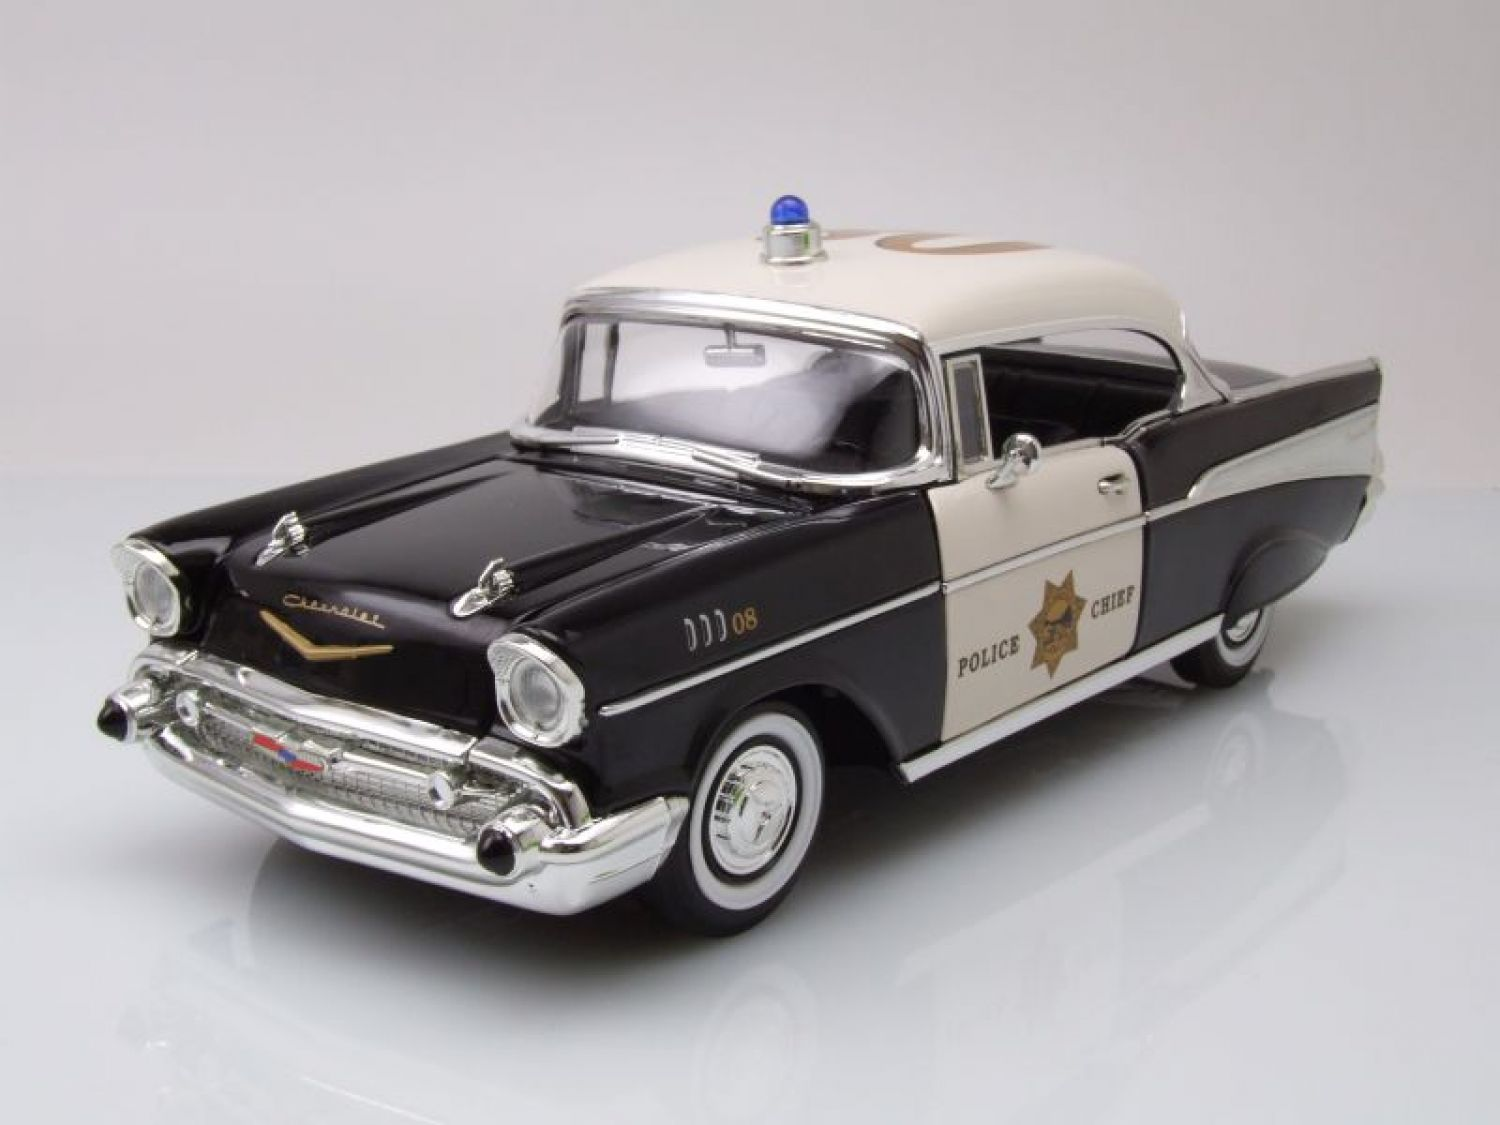 Chevrolet Bel Air Hardtop 1957 Police, Modellauto 1:18 / Lucky Die ...